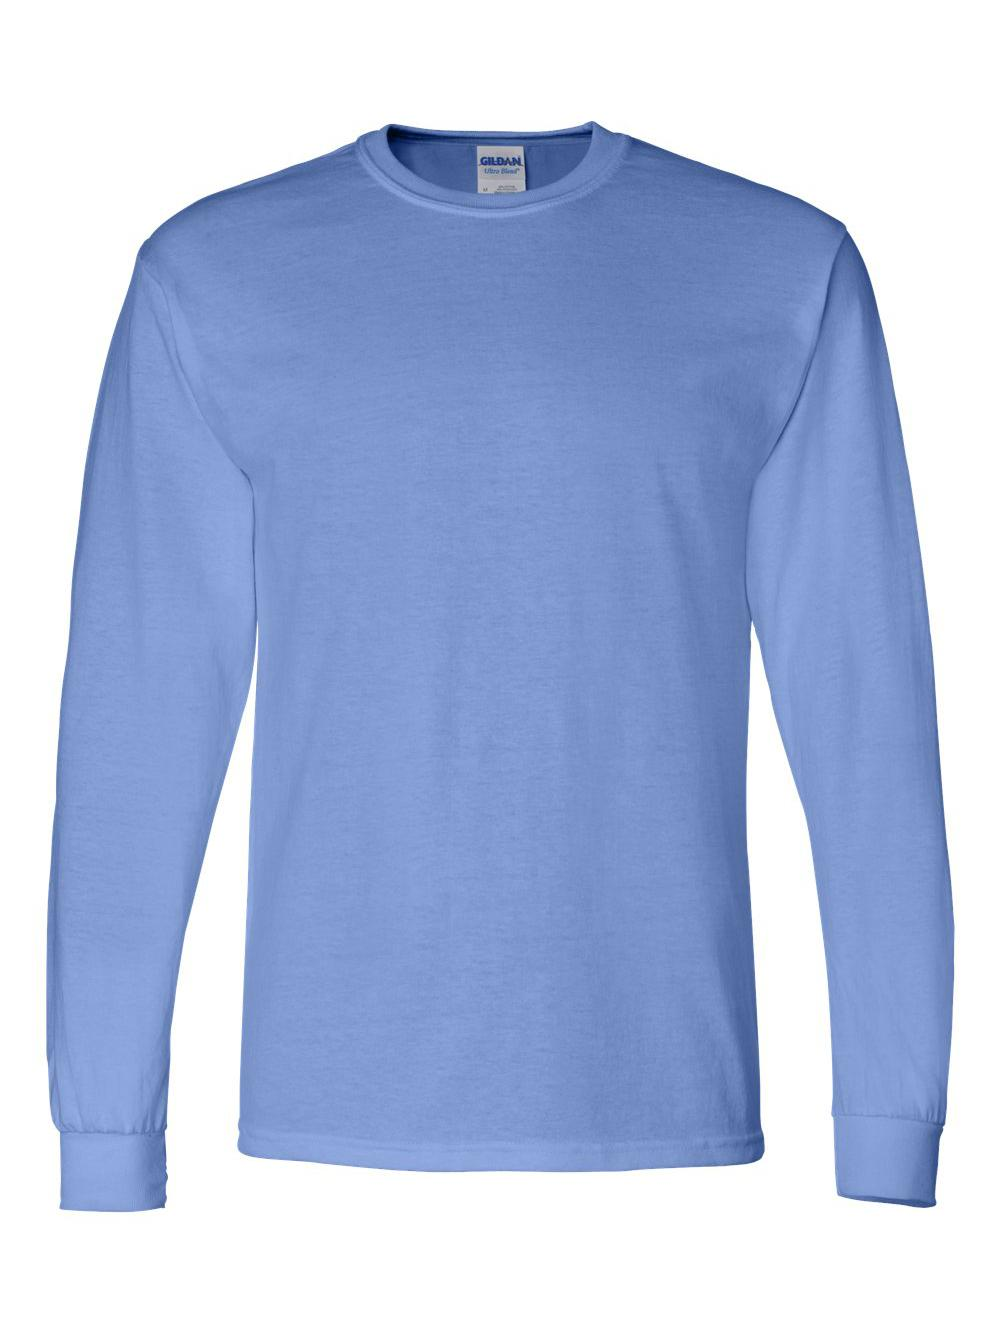 Gildan-DryBlend-50-50-Long-Sleeve-T-Shirt-8400 thumbnail 9